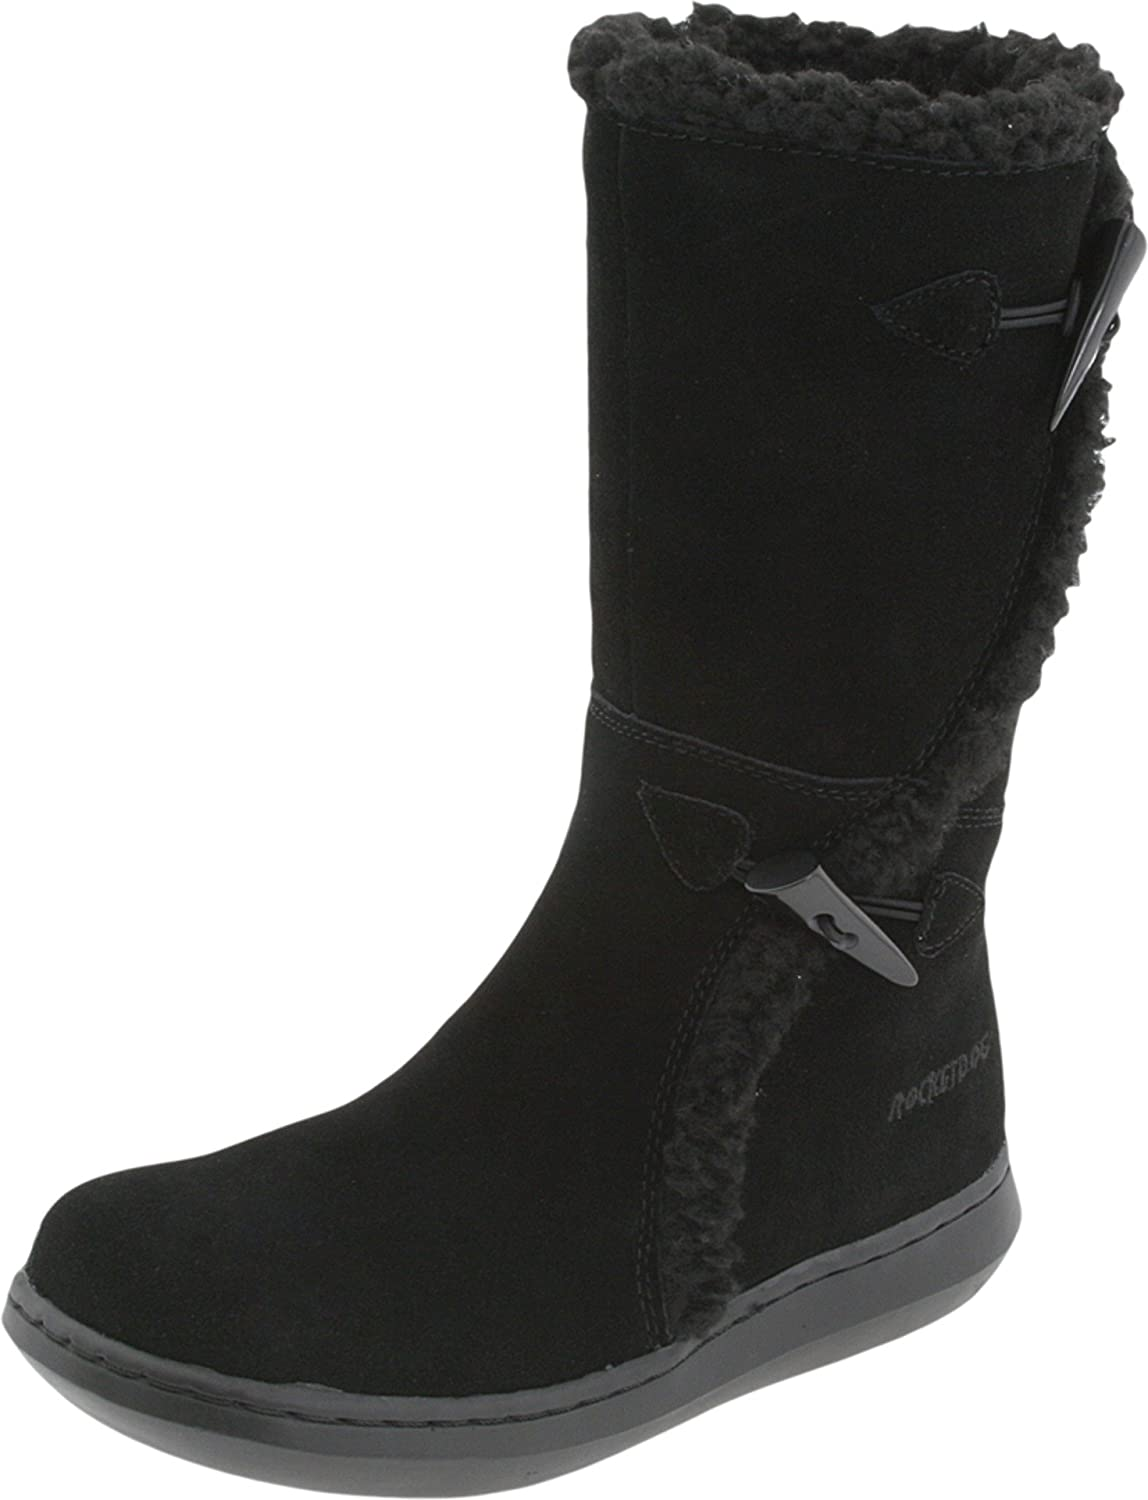 Rocket Dog Women's Milwaukee Mall Outlet ☆ Free Shipping Boot Slope Pull-On